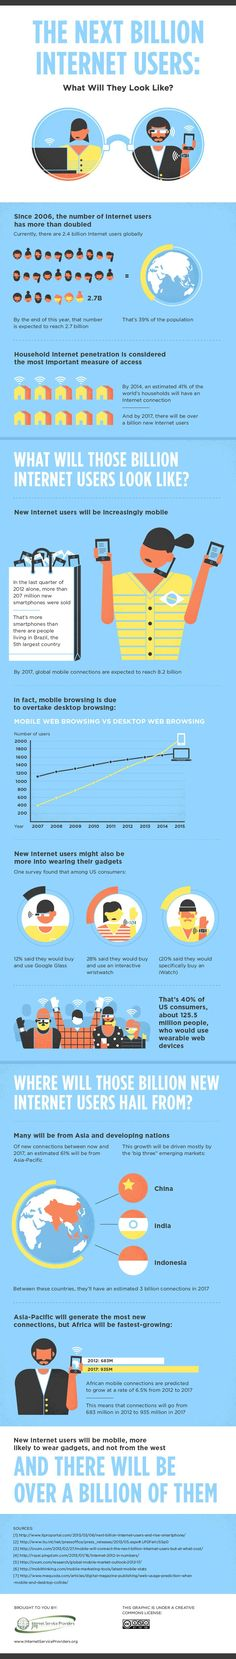 The next billion #Internet users #infographic